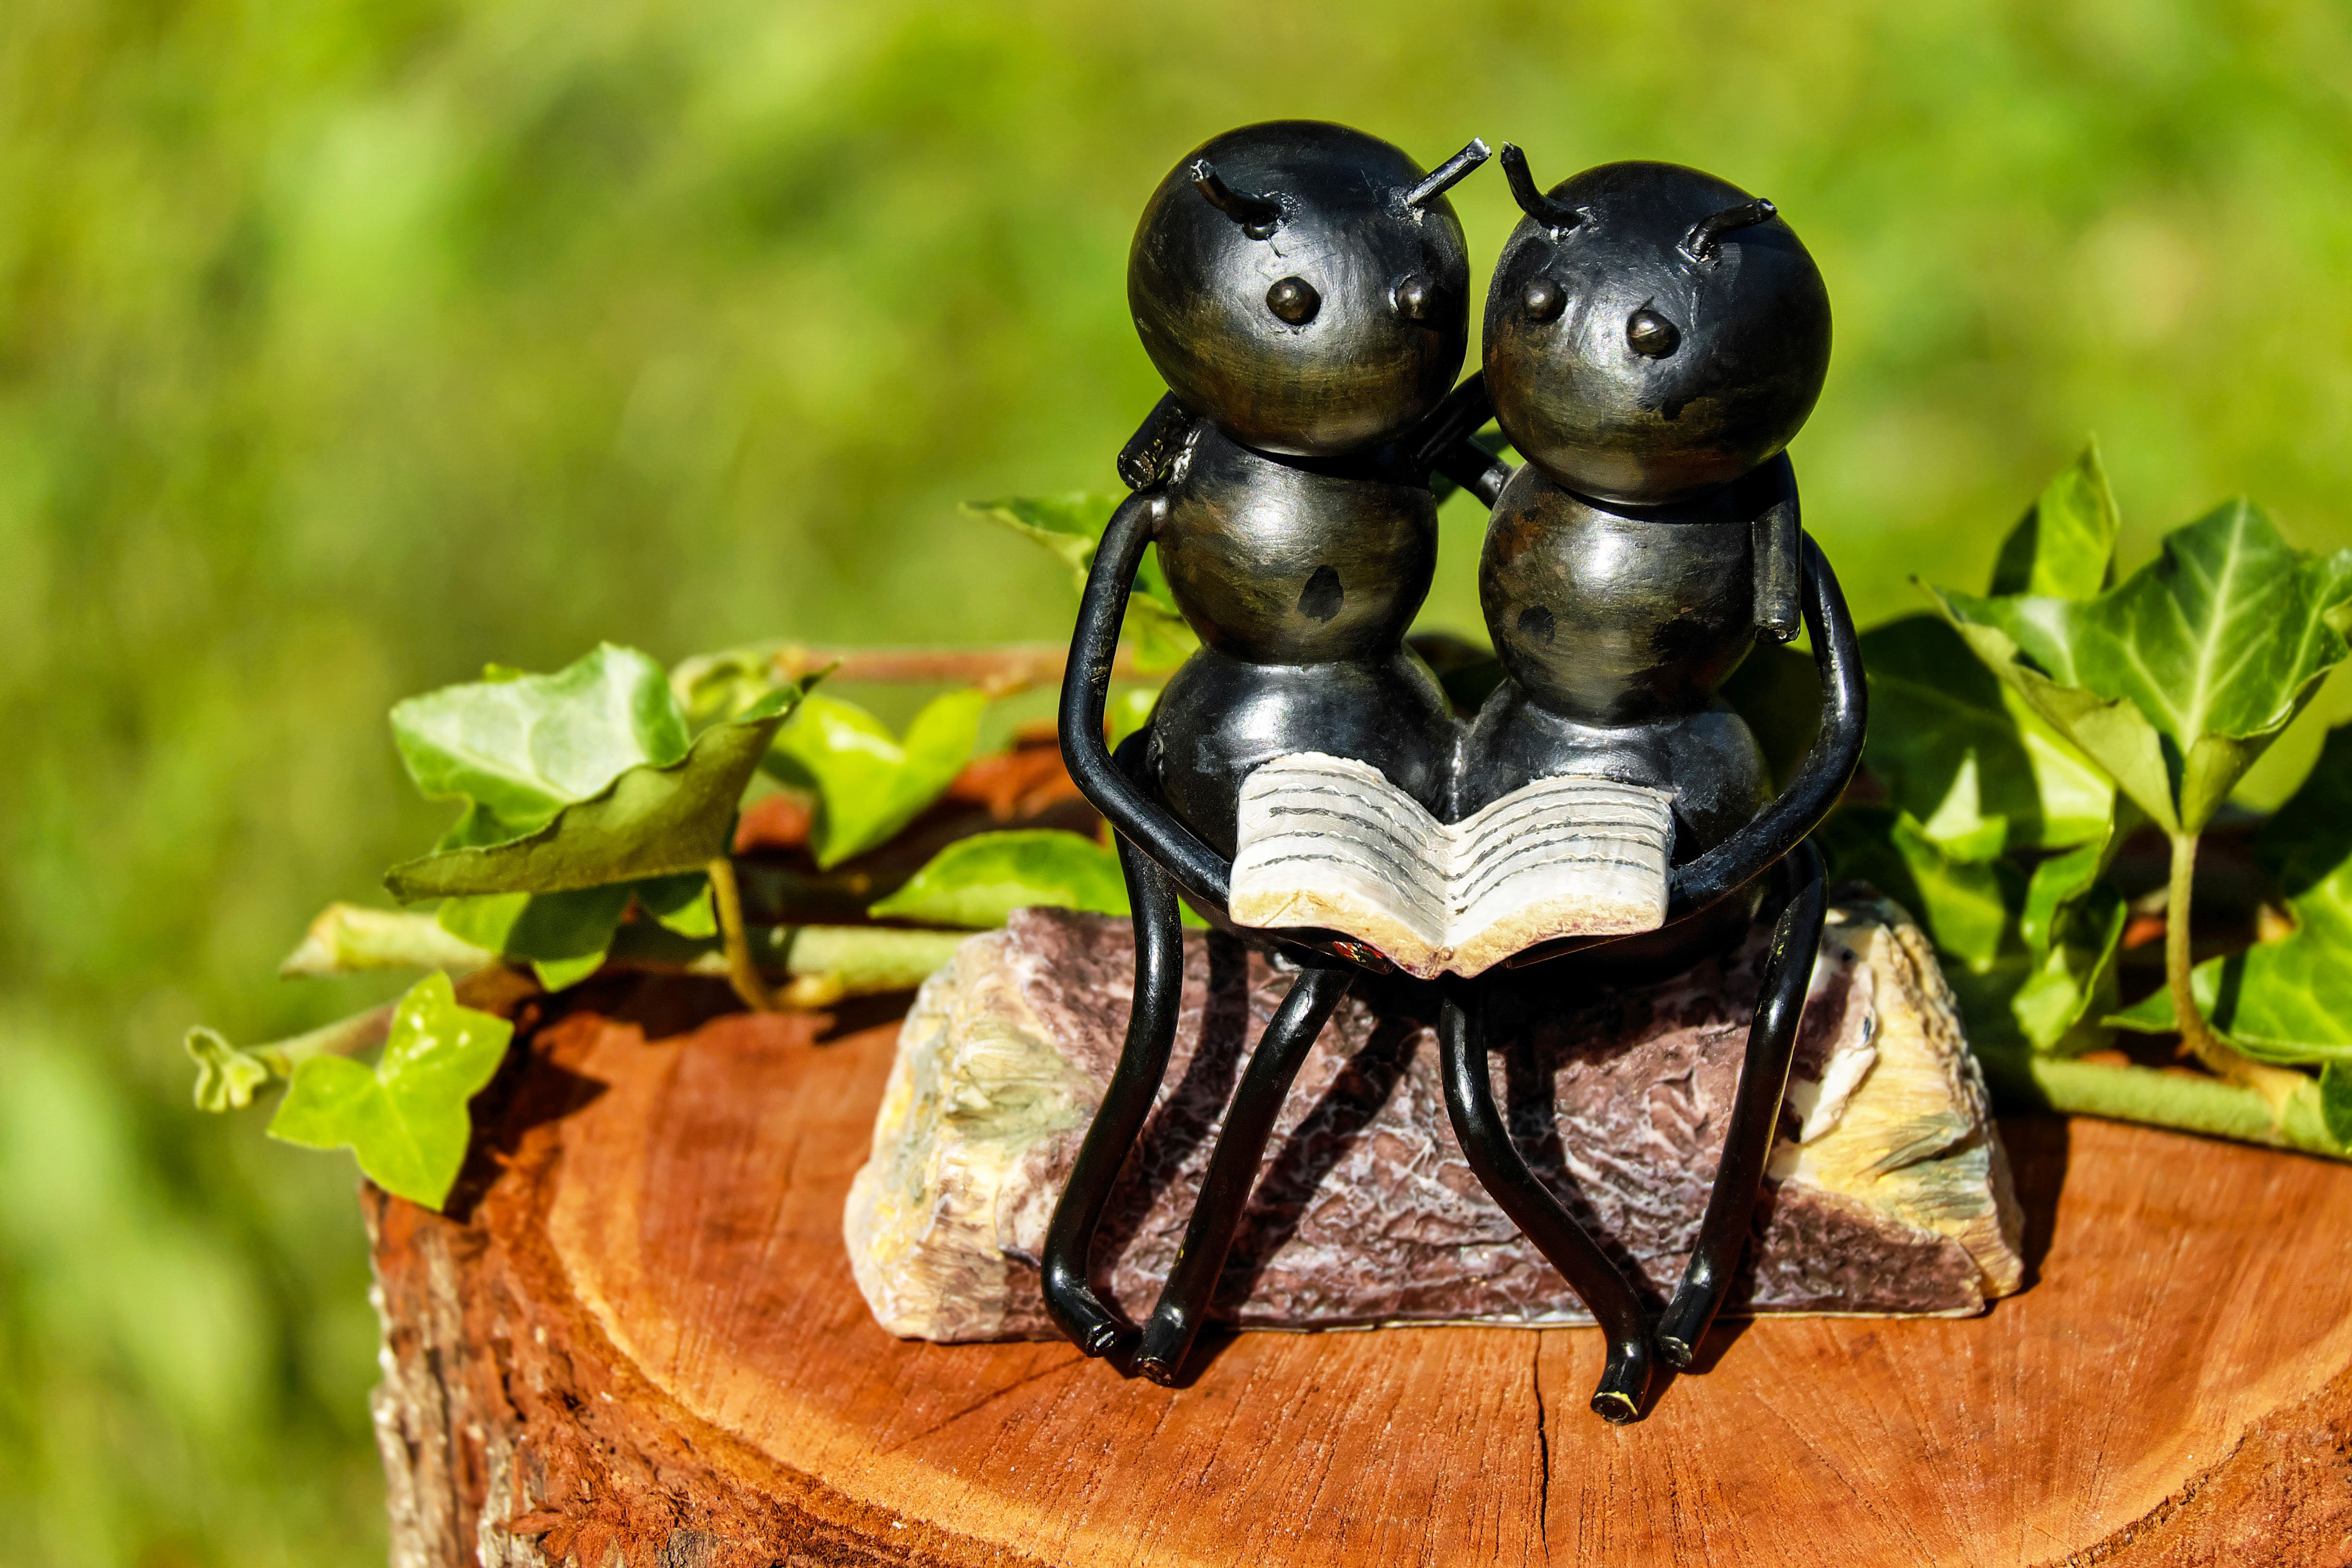 135400 download wallpaper Miscellanea, Miscellaneous, Ants, Sculpture, Bench, Couple, Pair, Book, Insects screensavers and pictures for free